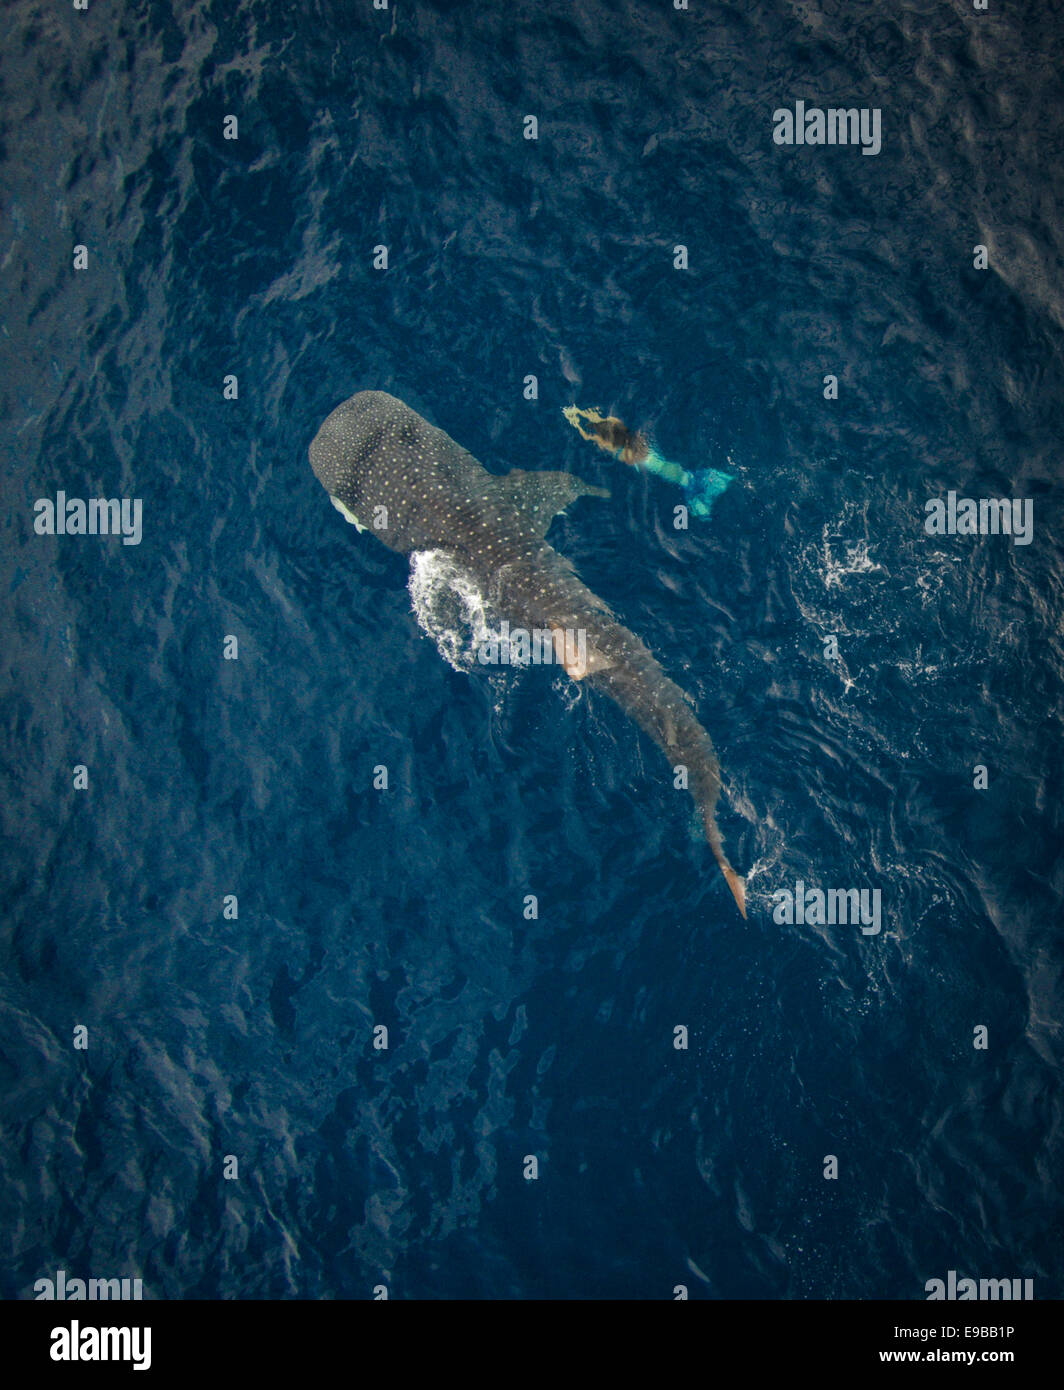 Aerial of a mermaid swimming along side a whale shark in the water off Isla Mujeres, Mexico - Stock Image